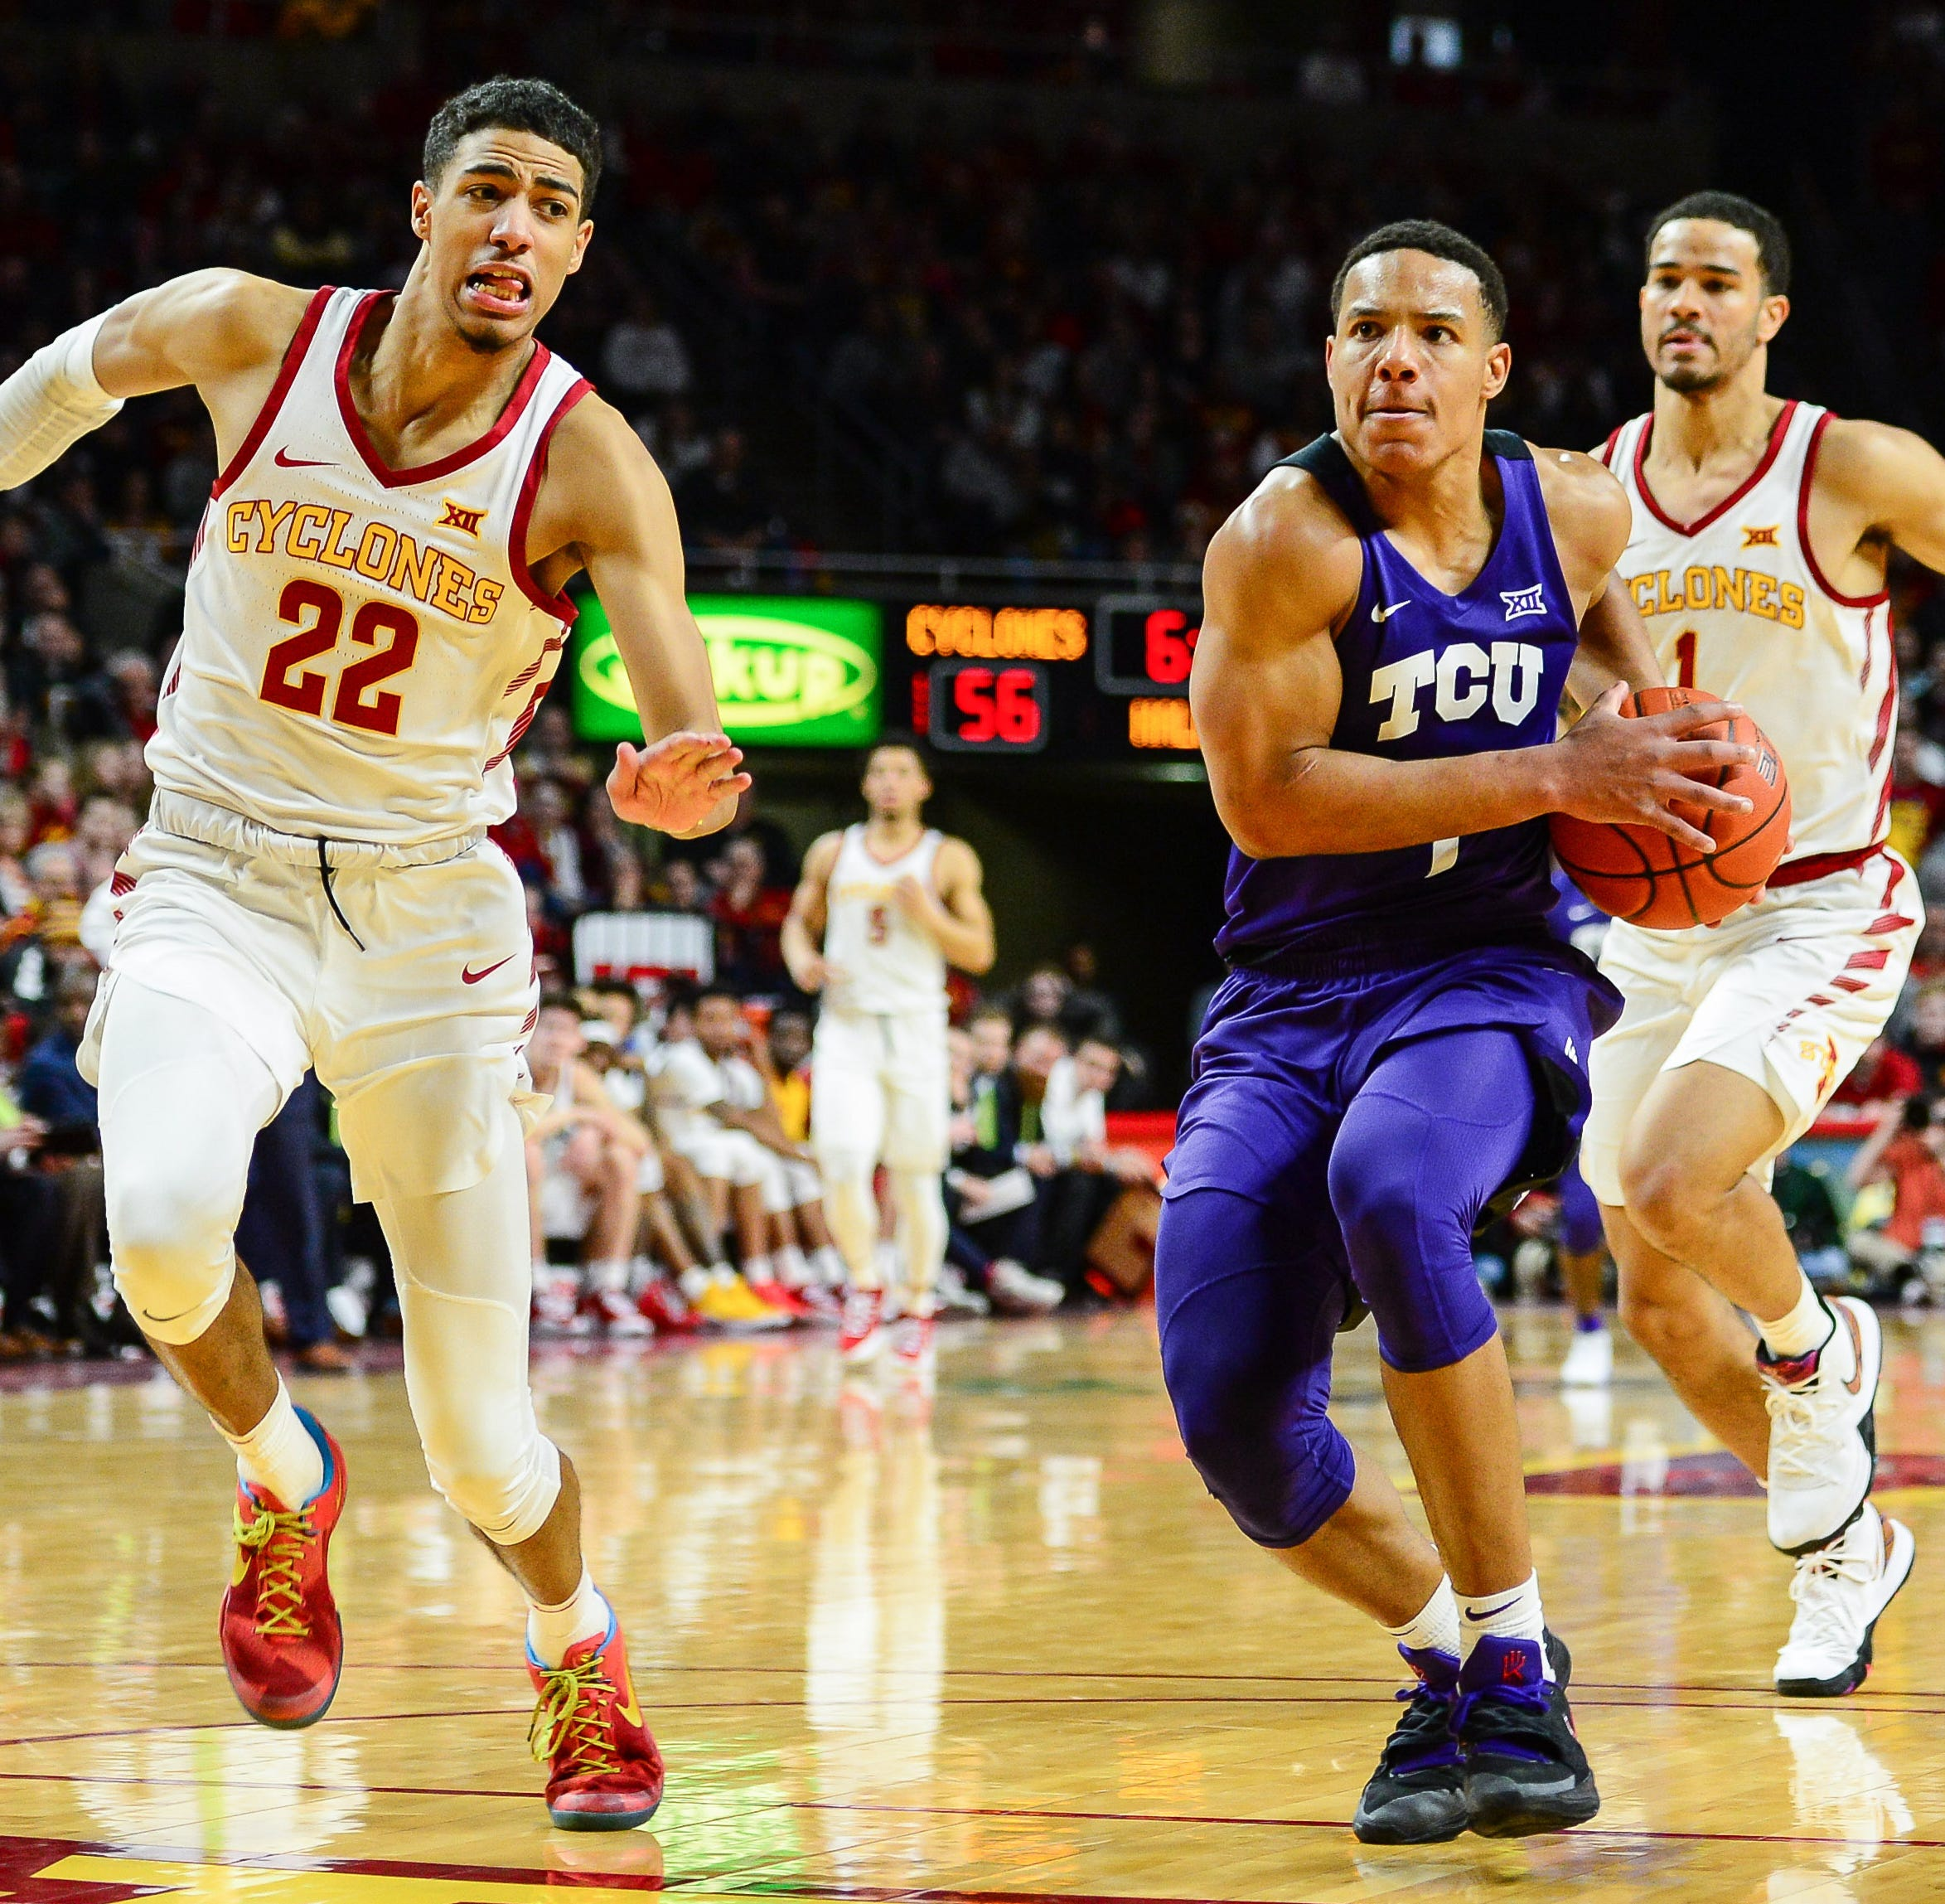 Peterson: If Cyclones don't play tougher, they'll lose at TCU and fall deeper in Big 12 tourney seeding